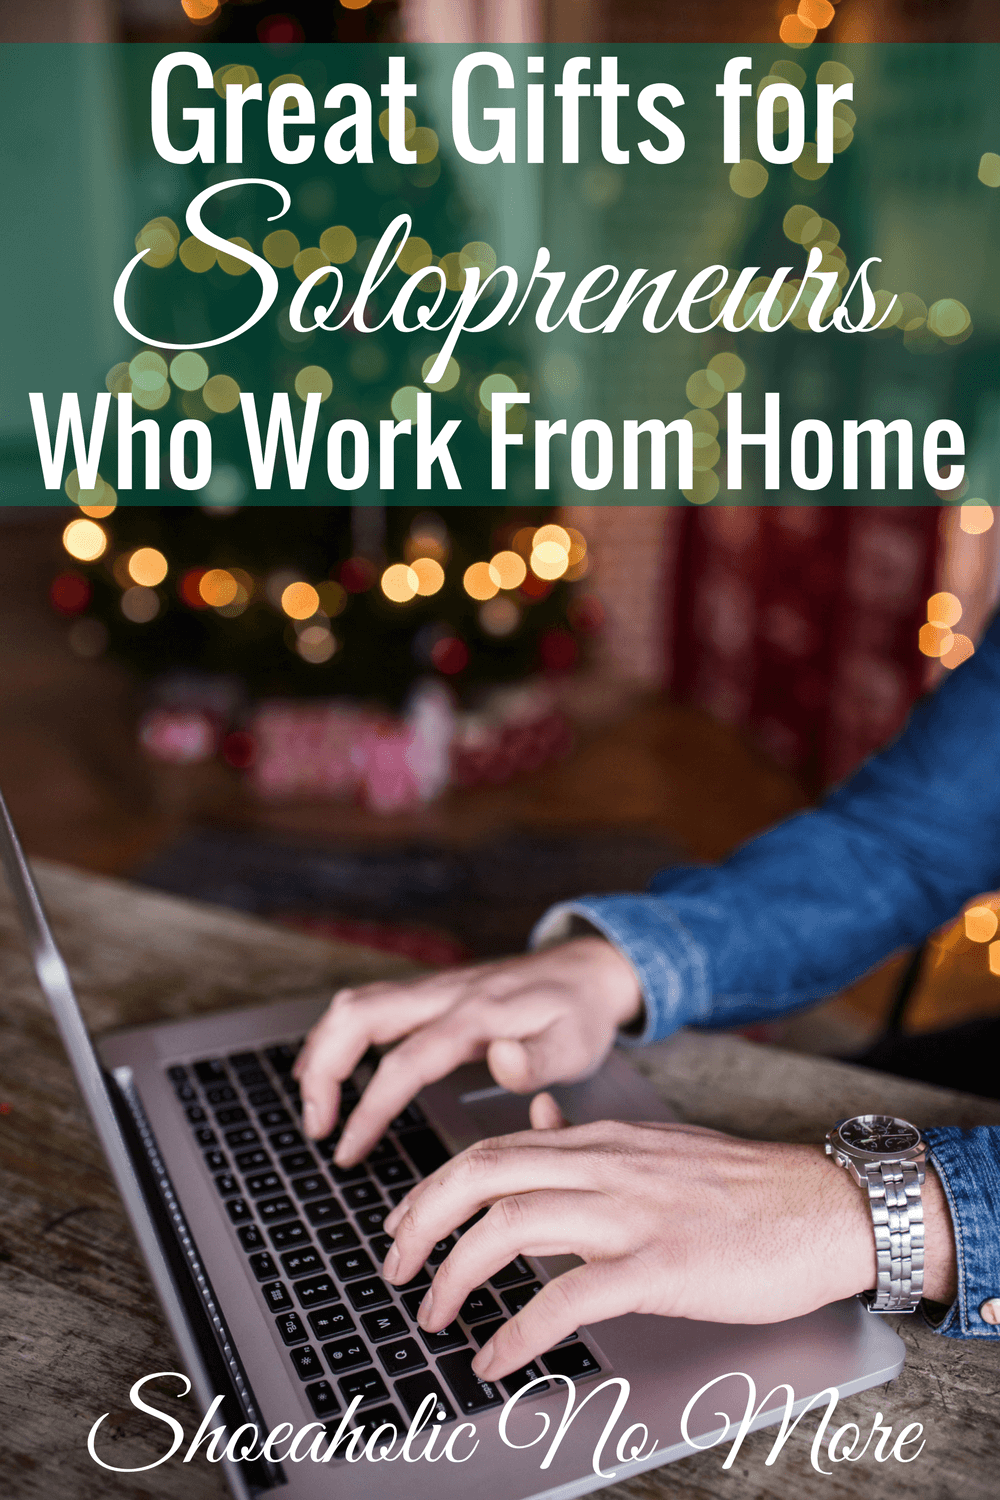 If you are Christmas shopping for solopreneurs who work from home, here are 8 great gift ideas that will make you their favorite person of the year.